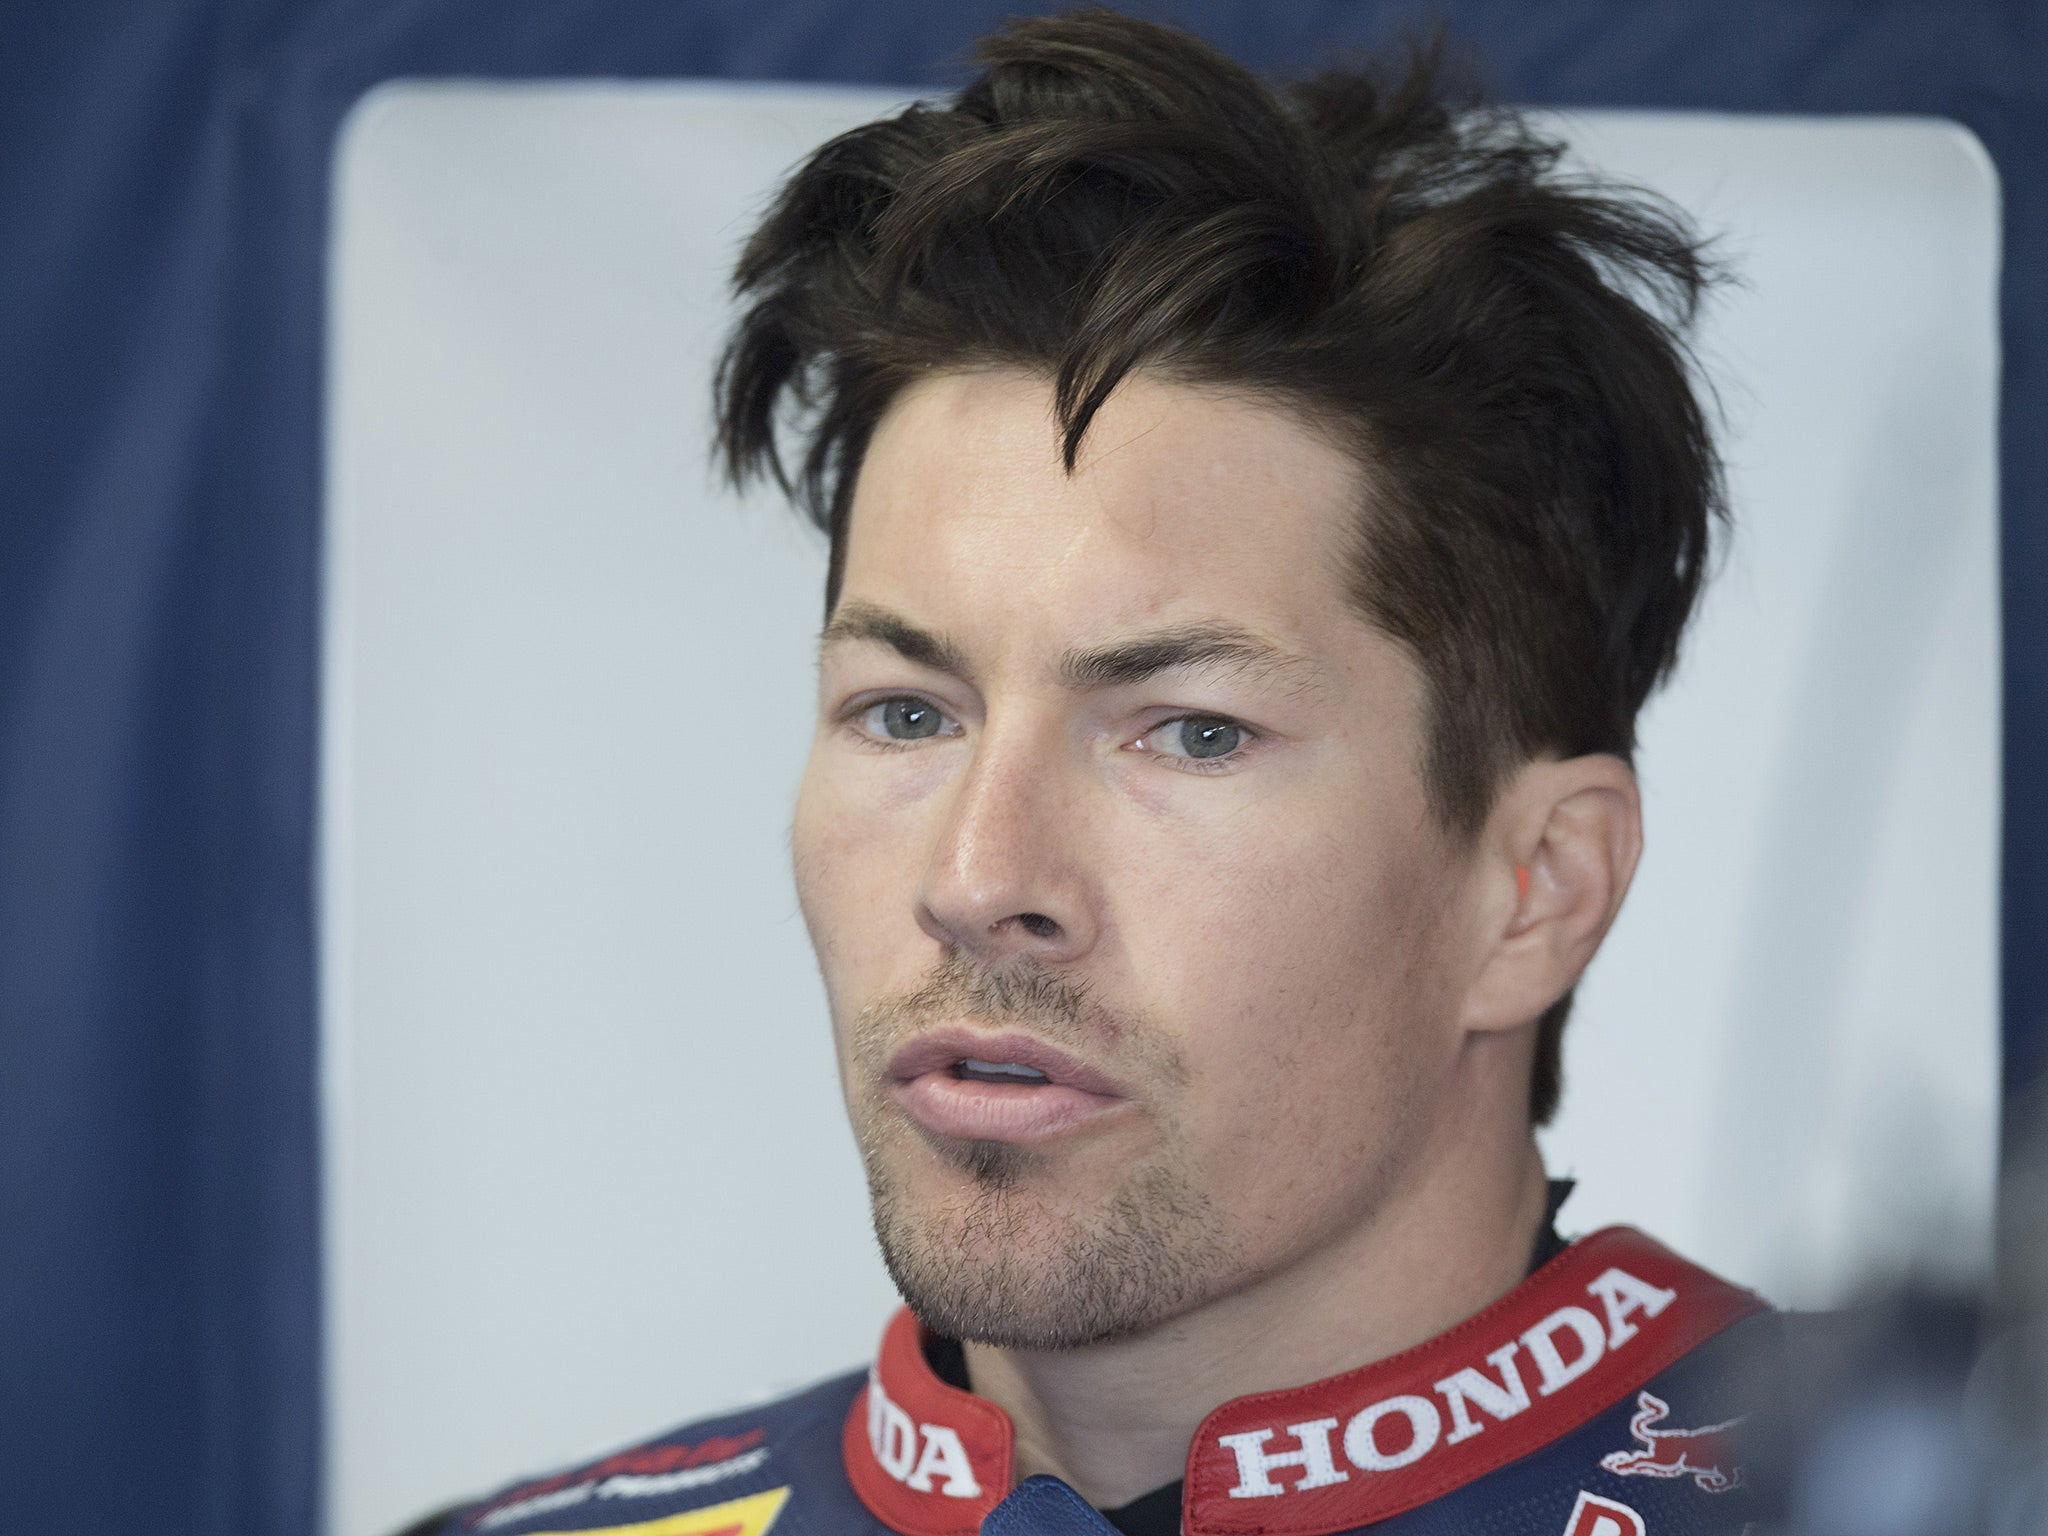 motogp - latest news, breaking stories and comment - The Independent